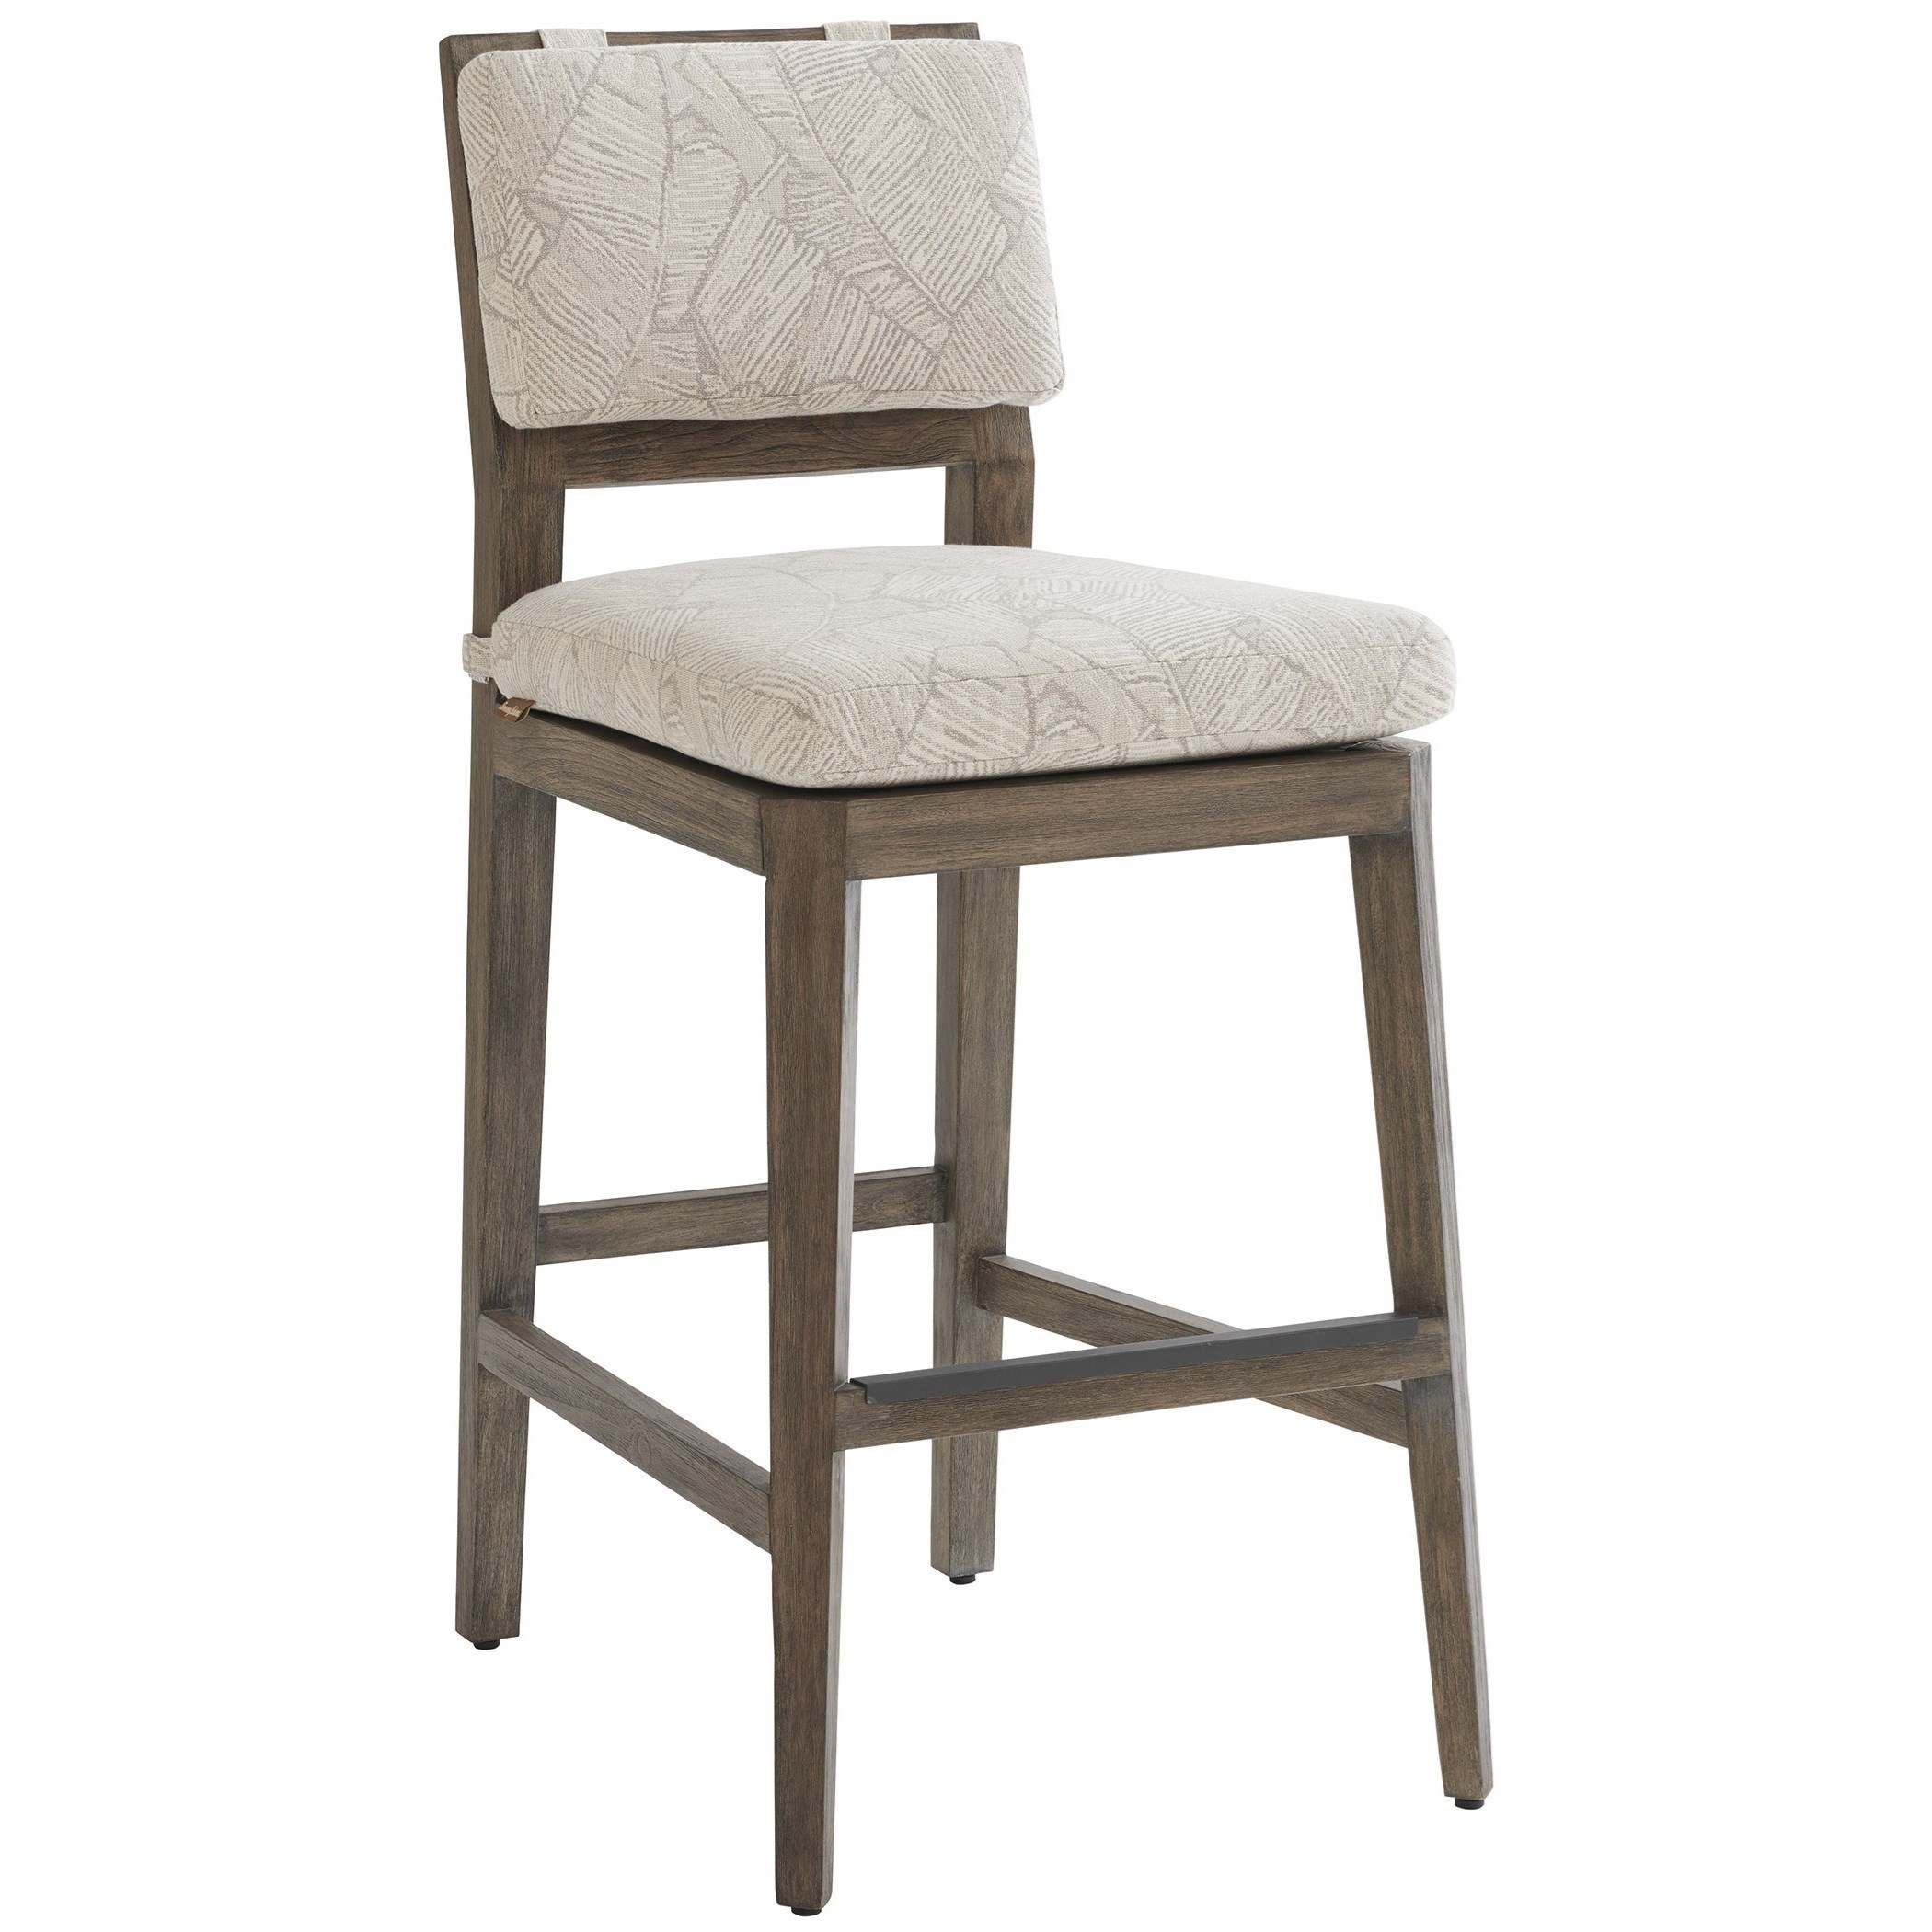 La Jolla Bar Stool by Tommy Bahama Outdoor Living at Baer's Furniture